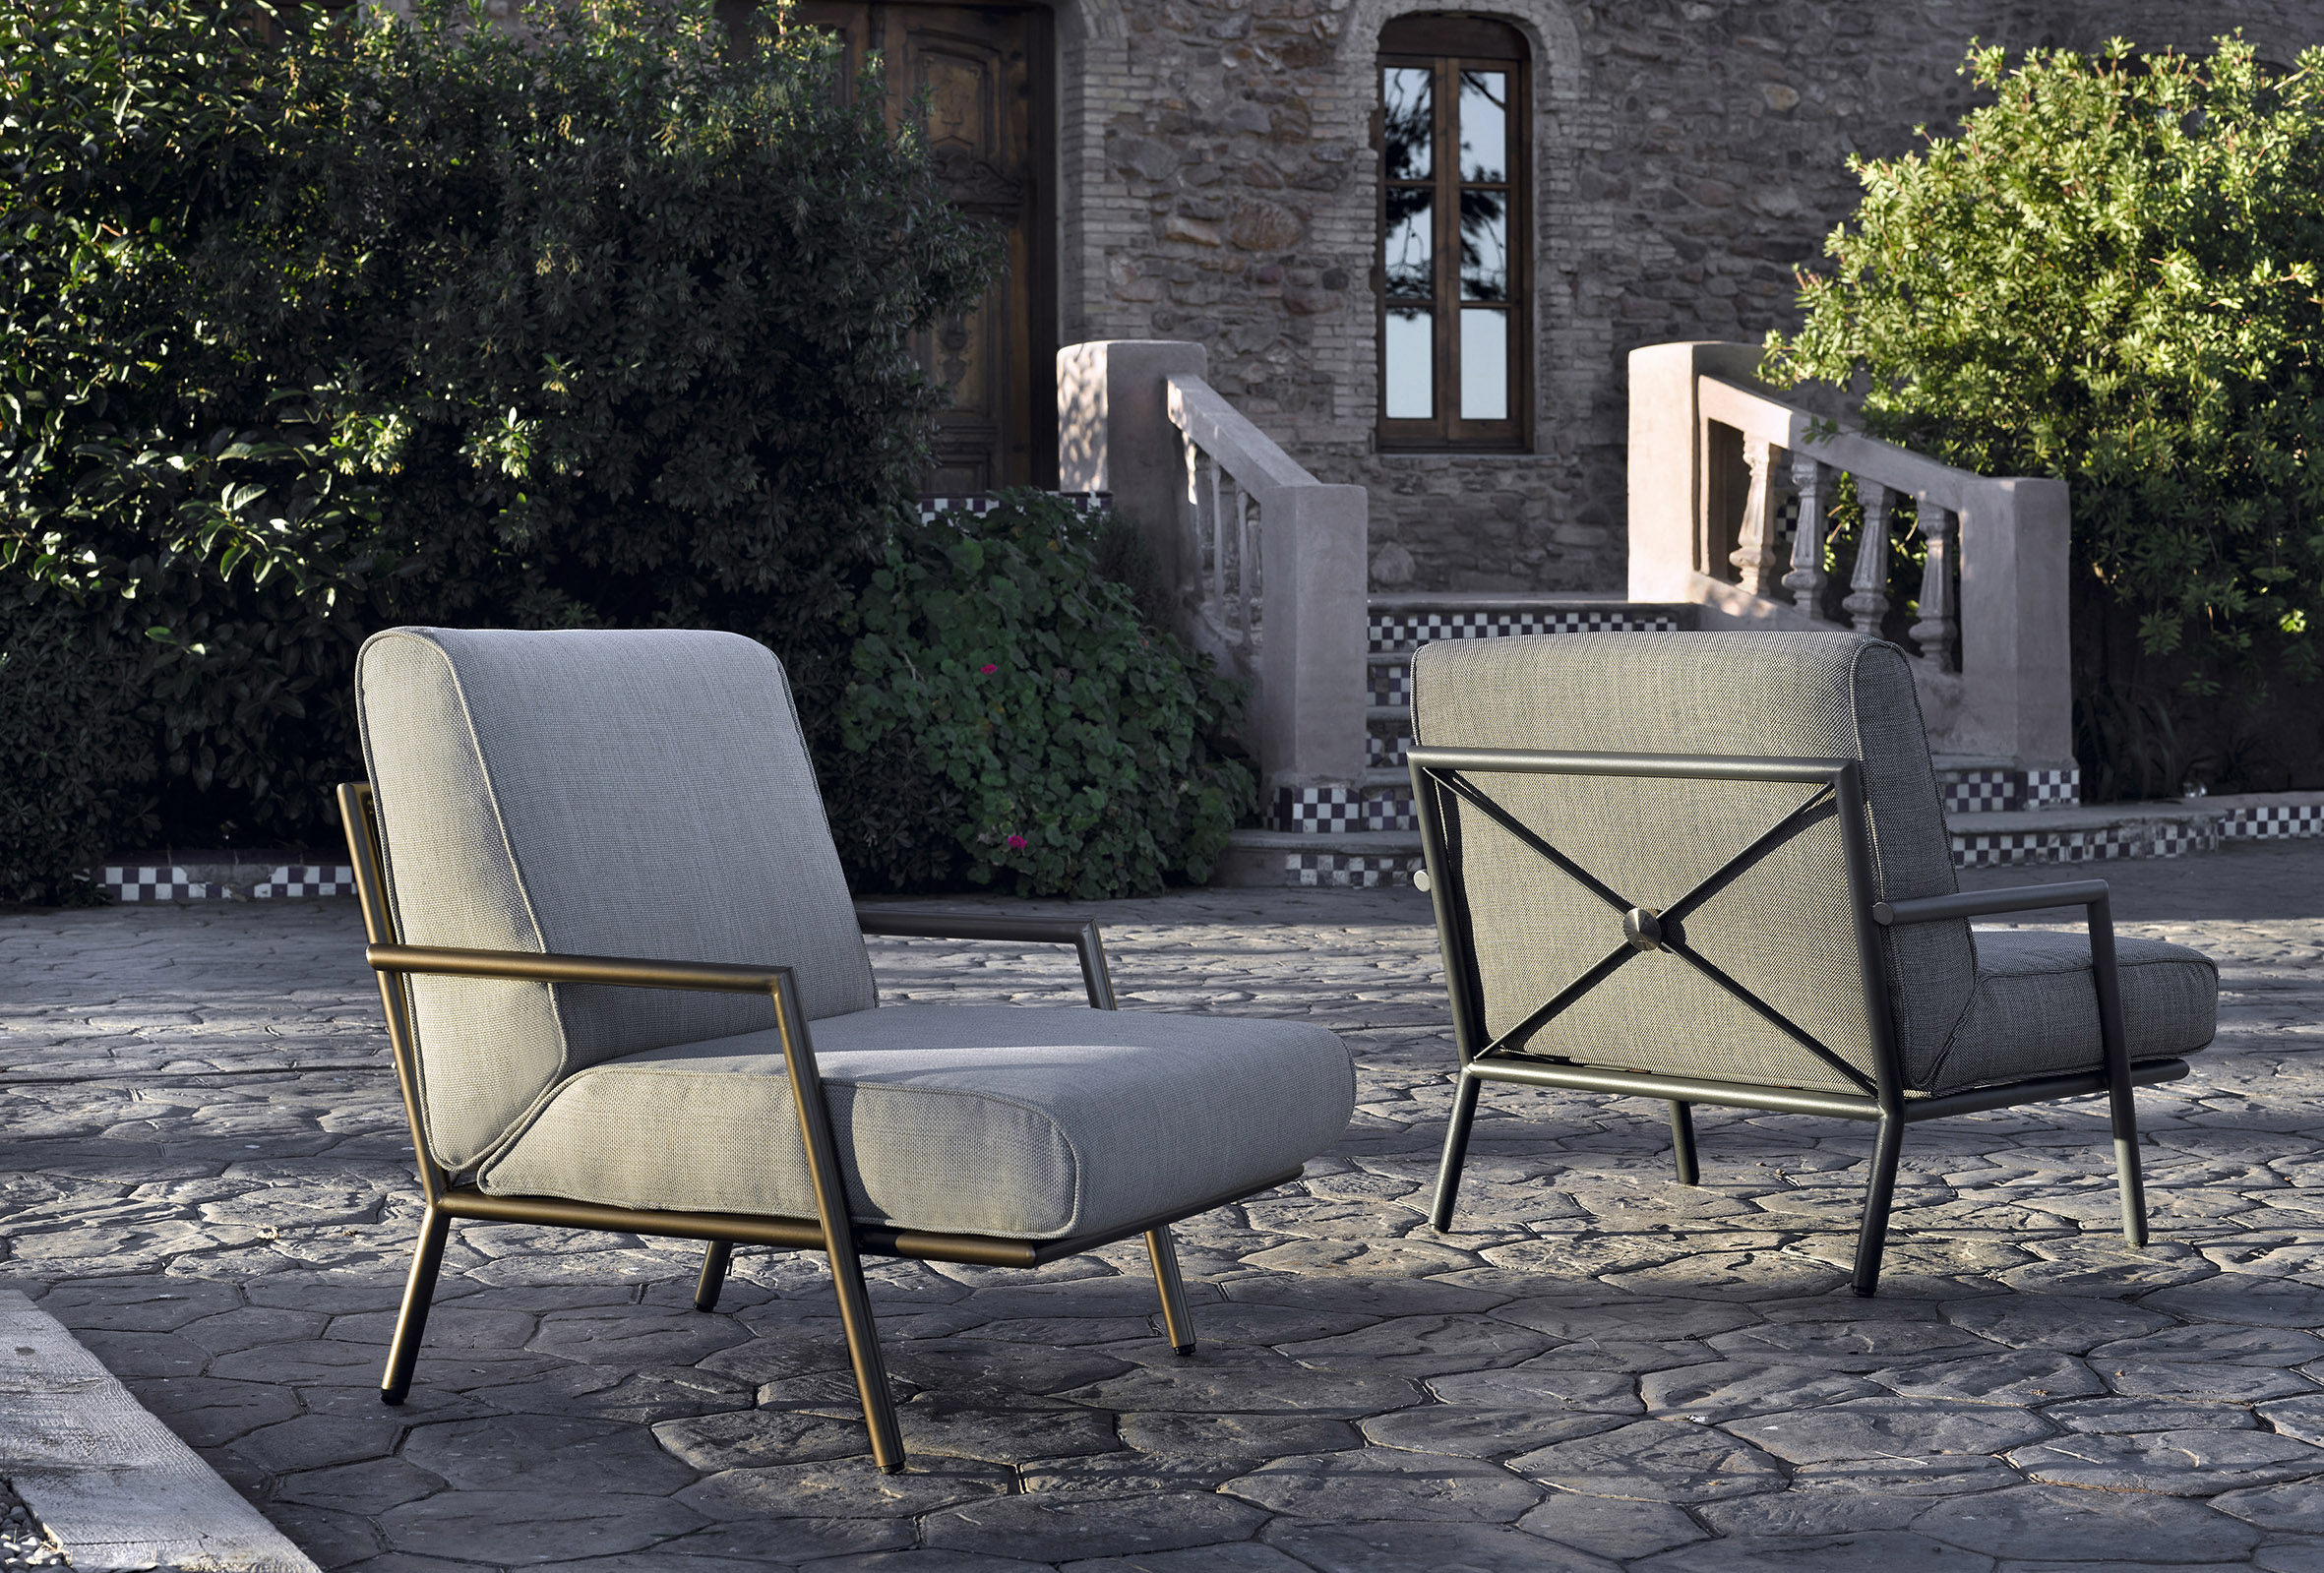 Luxury Garden Furniture Patio Furniture